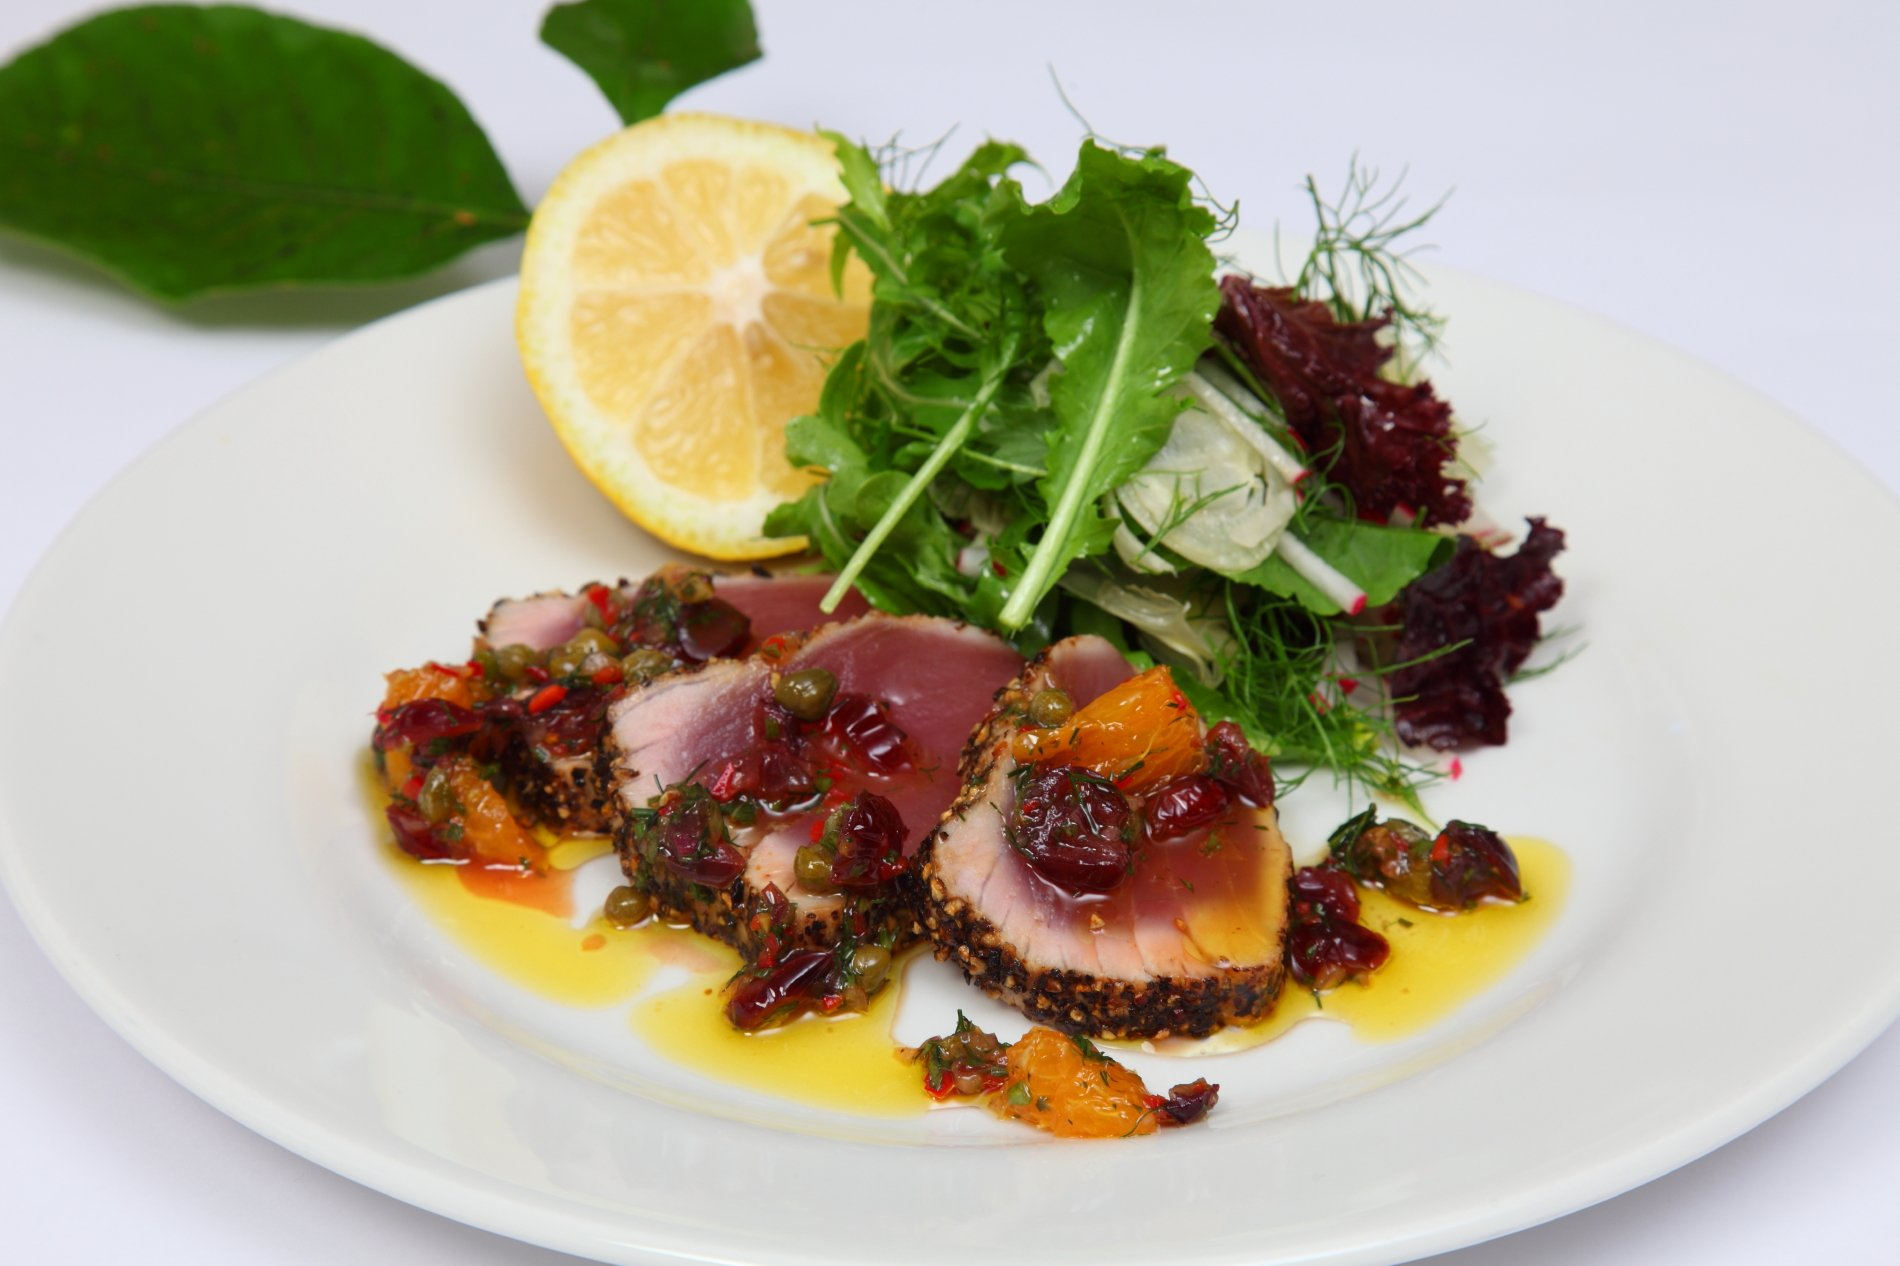 Seared Peppered Yellow Fin Tuna with Dried Cranberries, Orange, Chili & Dill